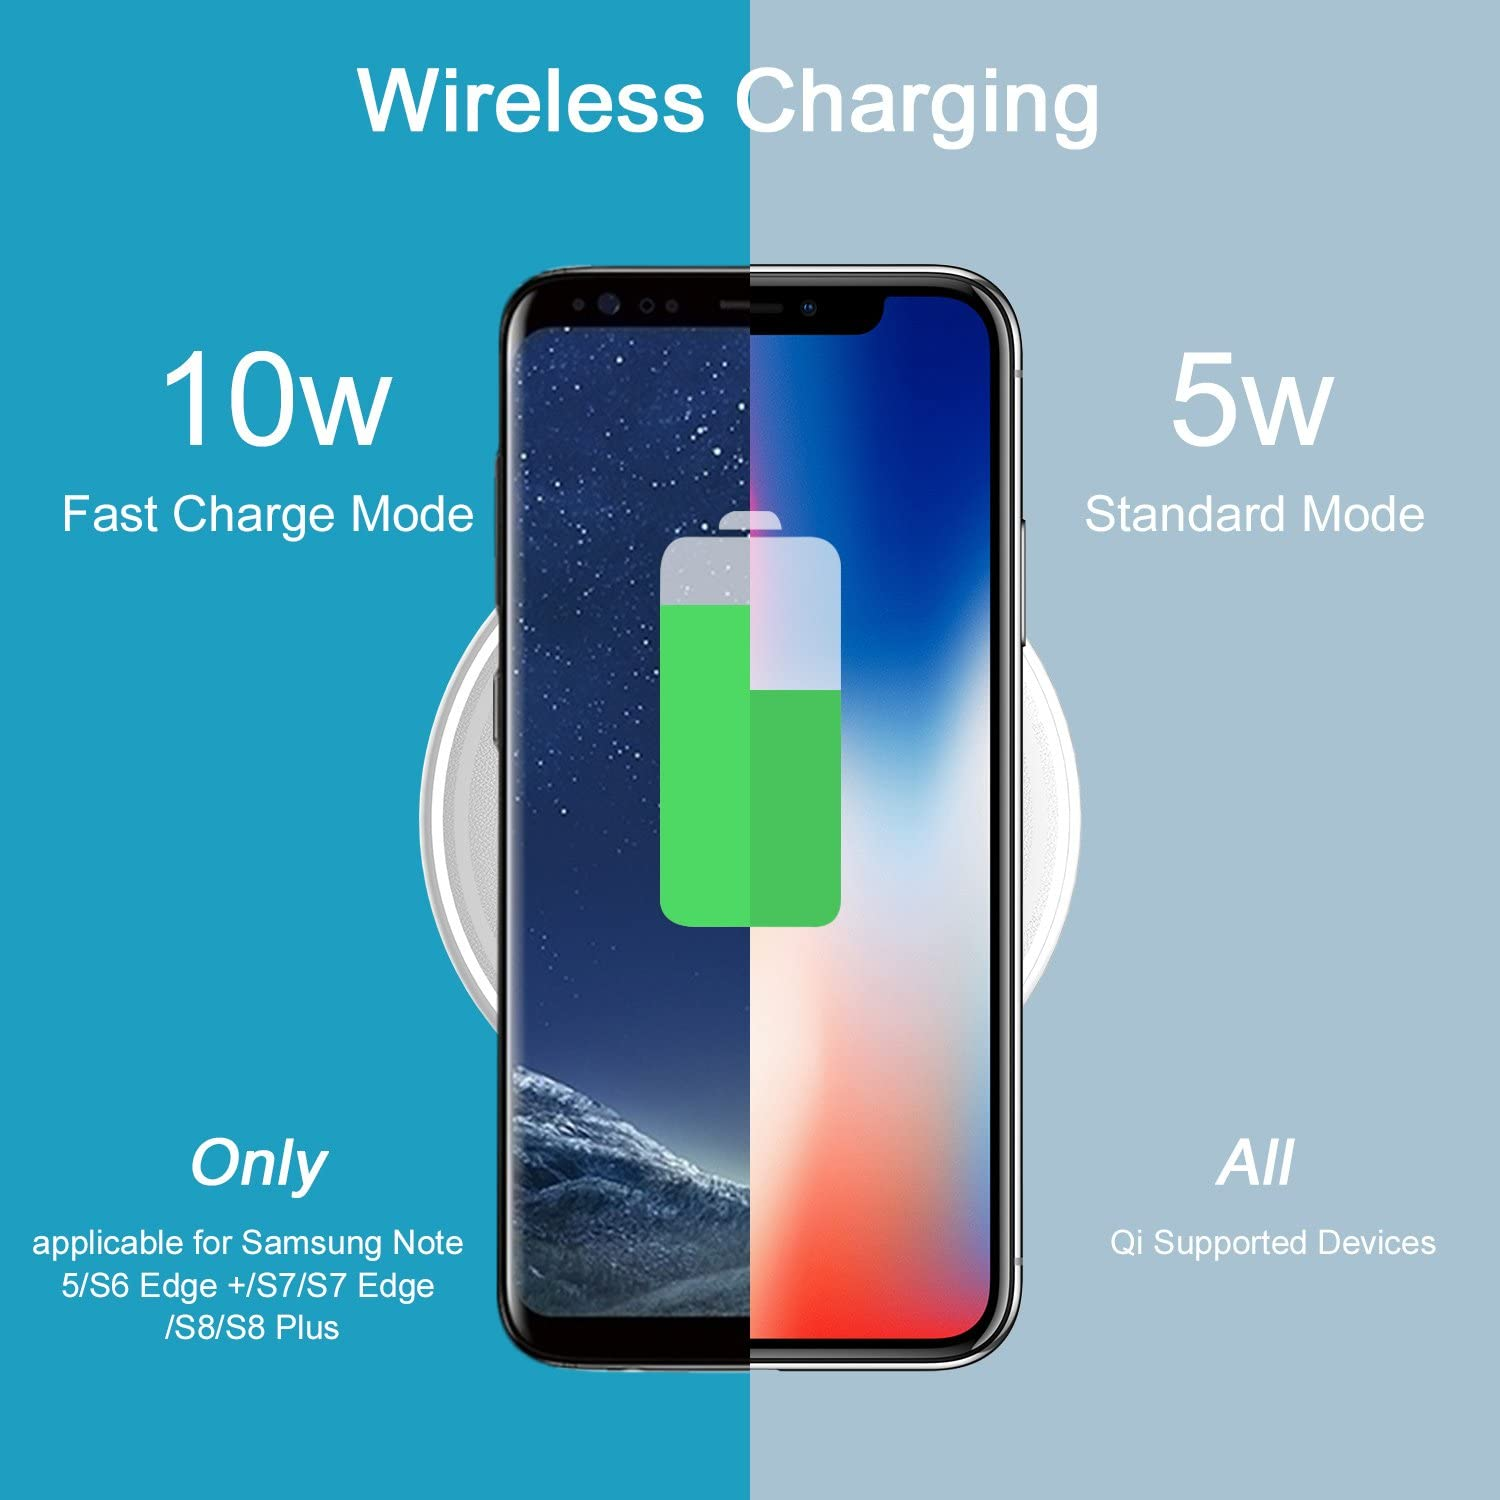 Galaxy Note 8 S8 P S7 Edge Etc- White Compatible for iOS and Androd System,Suitable for iPhone X,8 Plus,8 Fast Wireless Charger,Fast Charge for Androd,QI Wireless Charging Pad by ICONFLANG S8